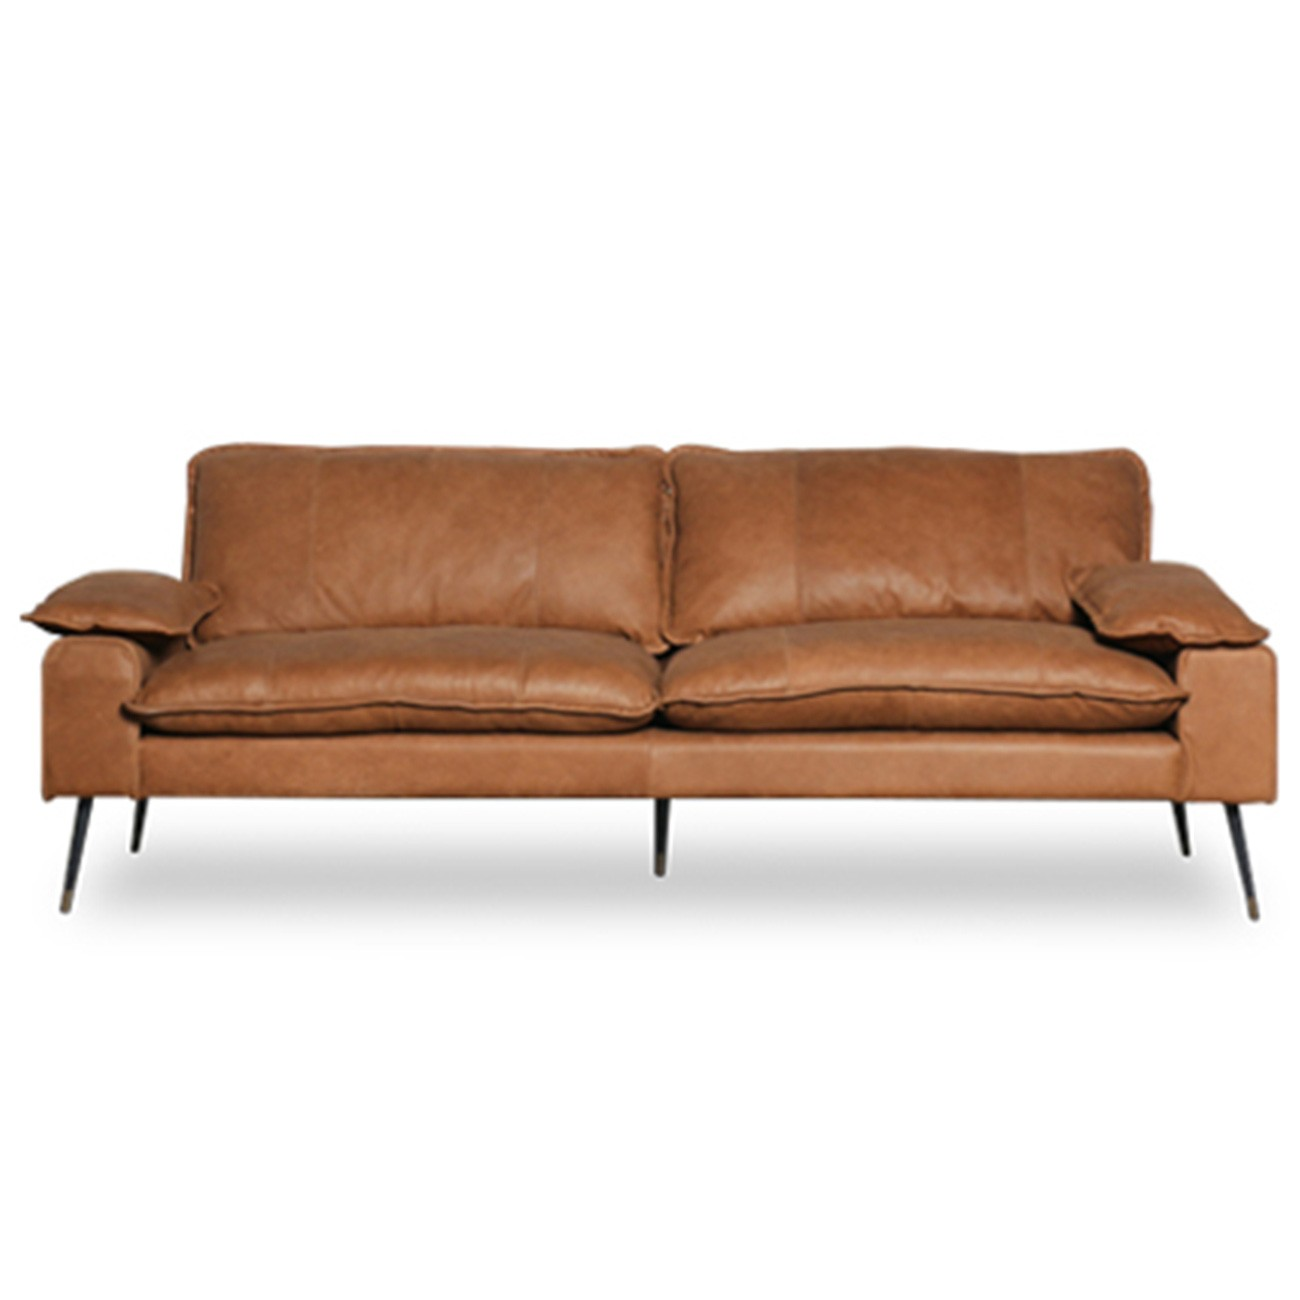 Marly Leather Sofa, 3 Seater